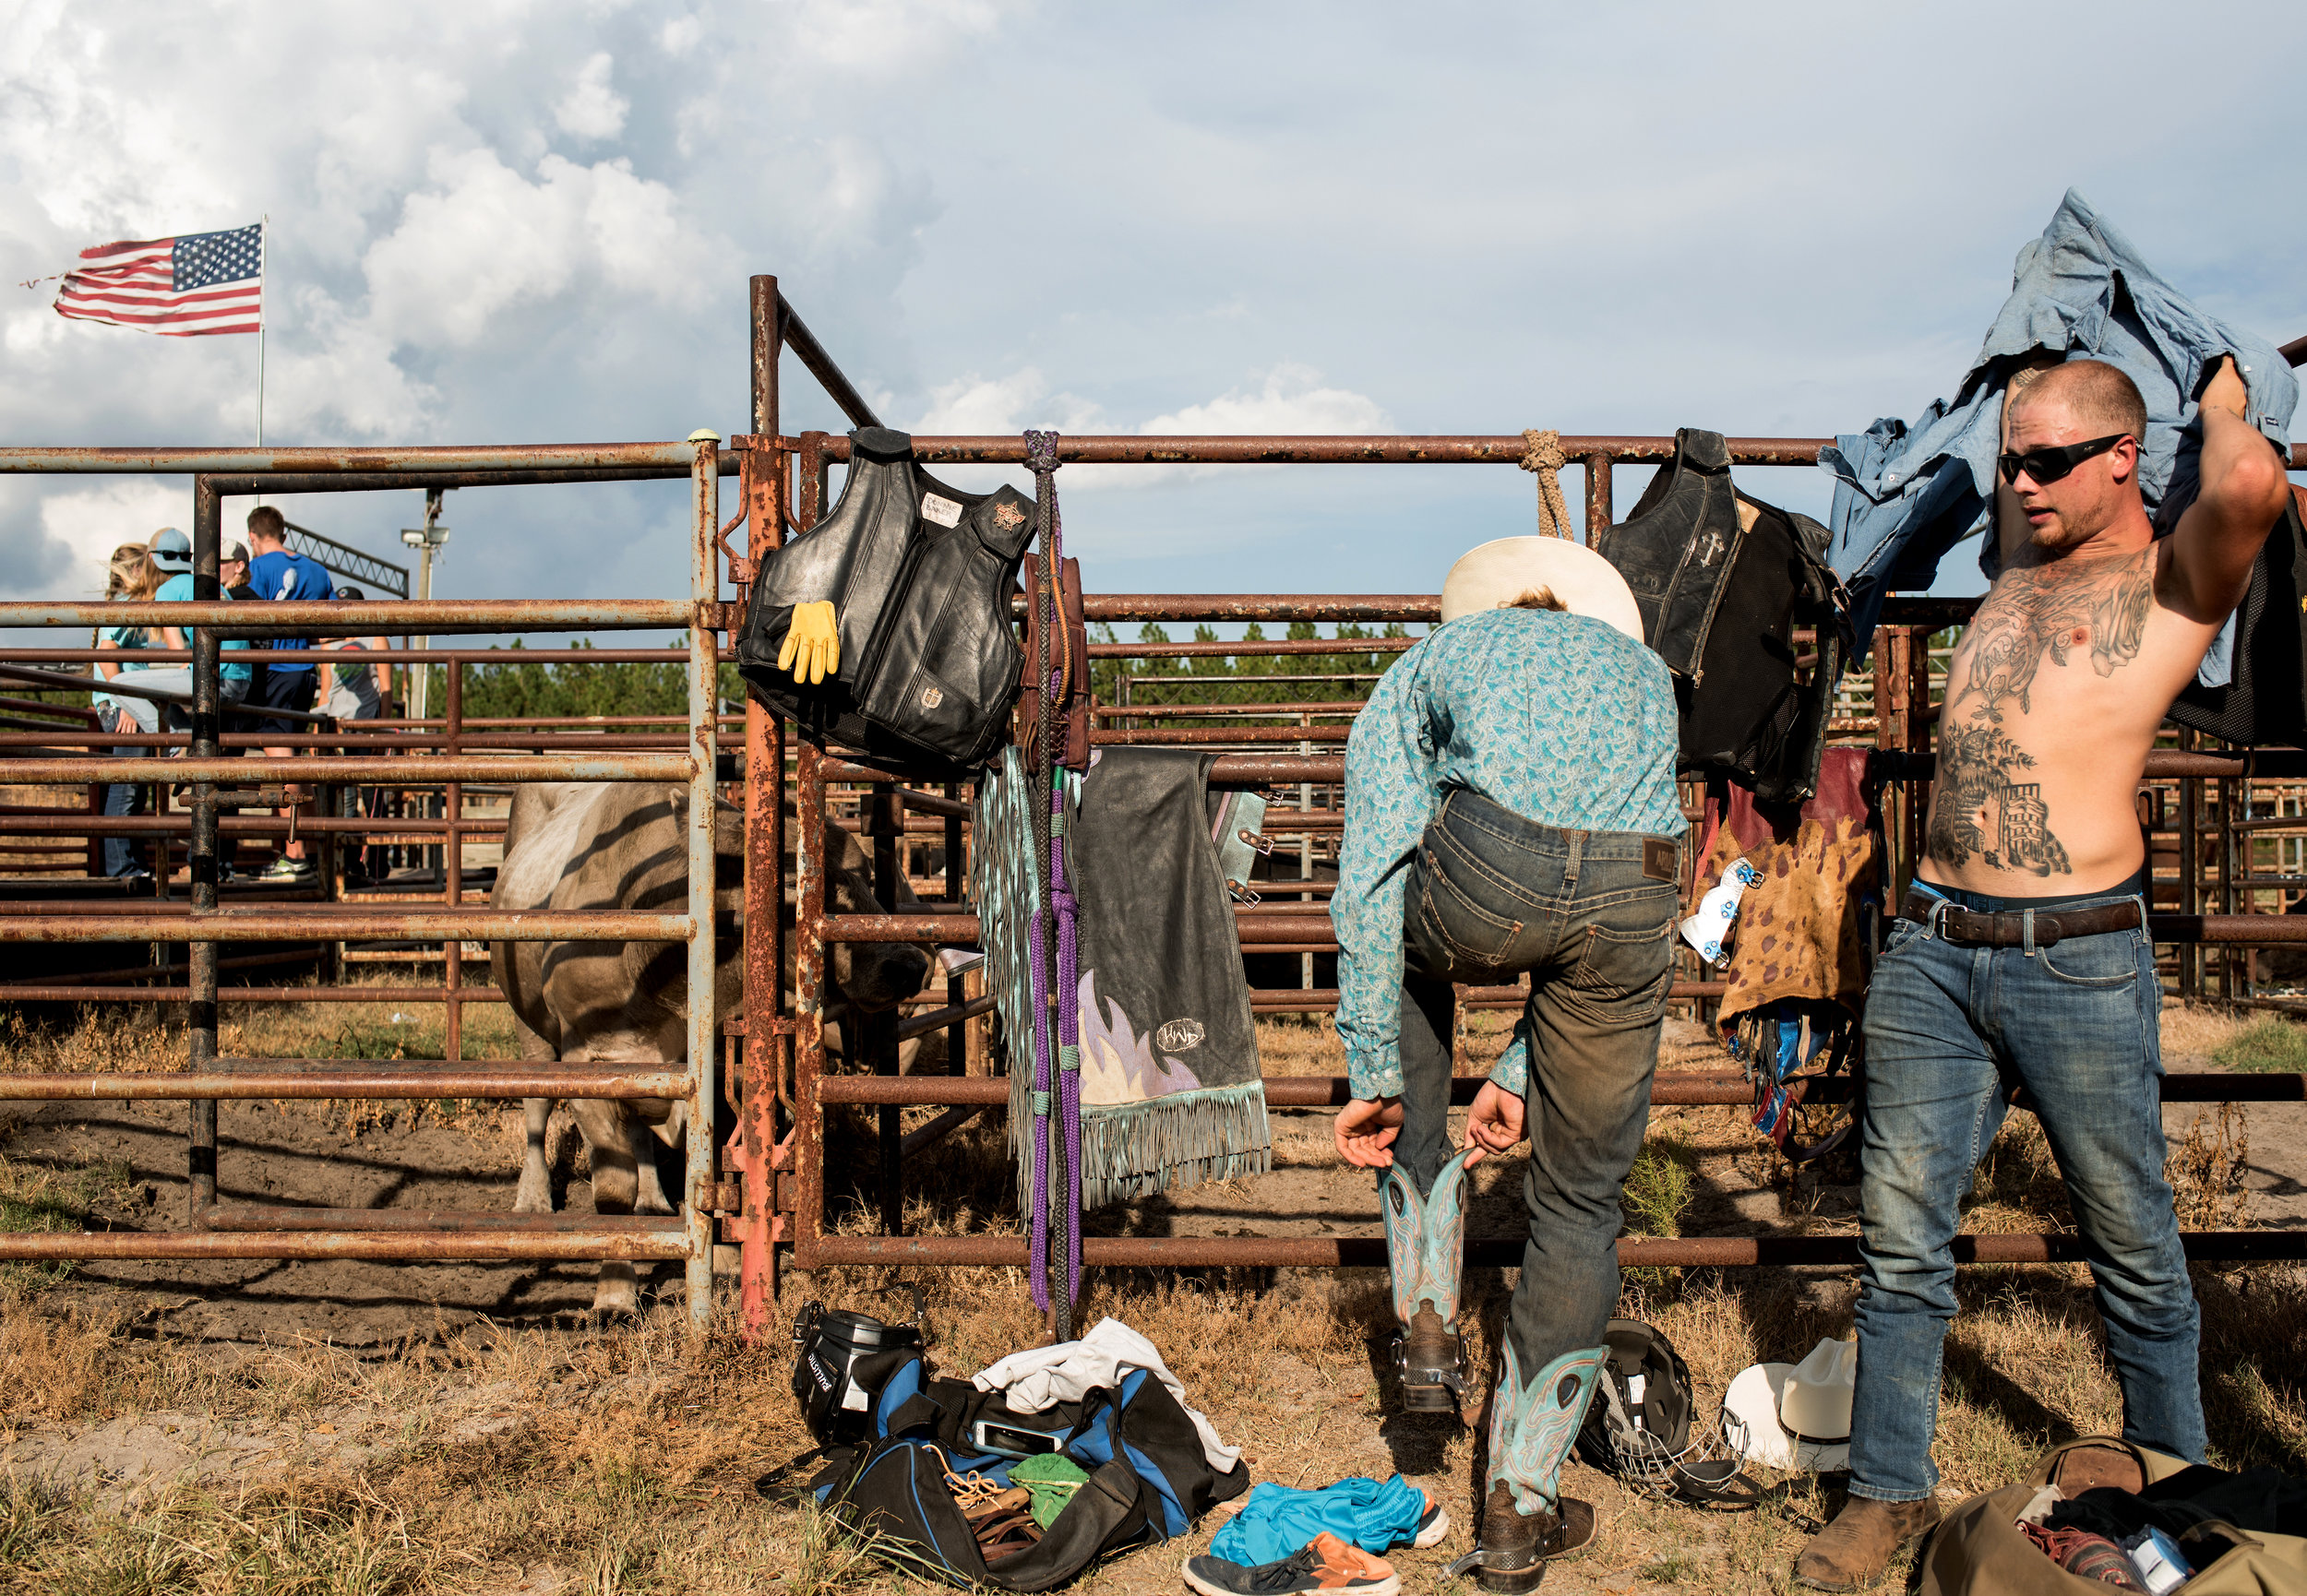 Amateur bull rider's gear up before they compete at Shady Acres Farm in Hope Mills, North Carolina.